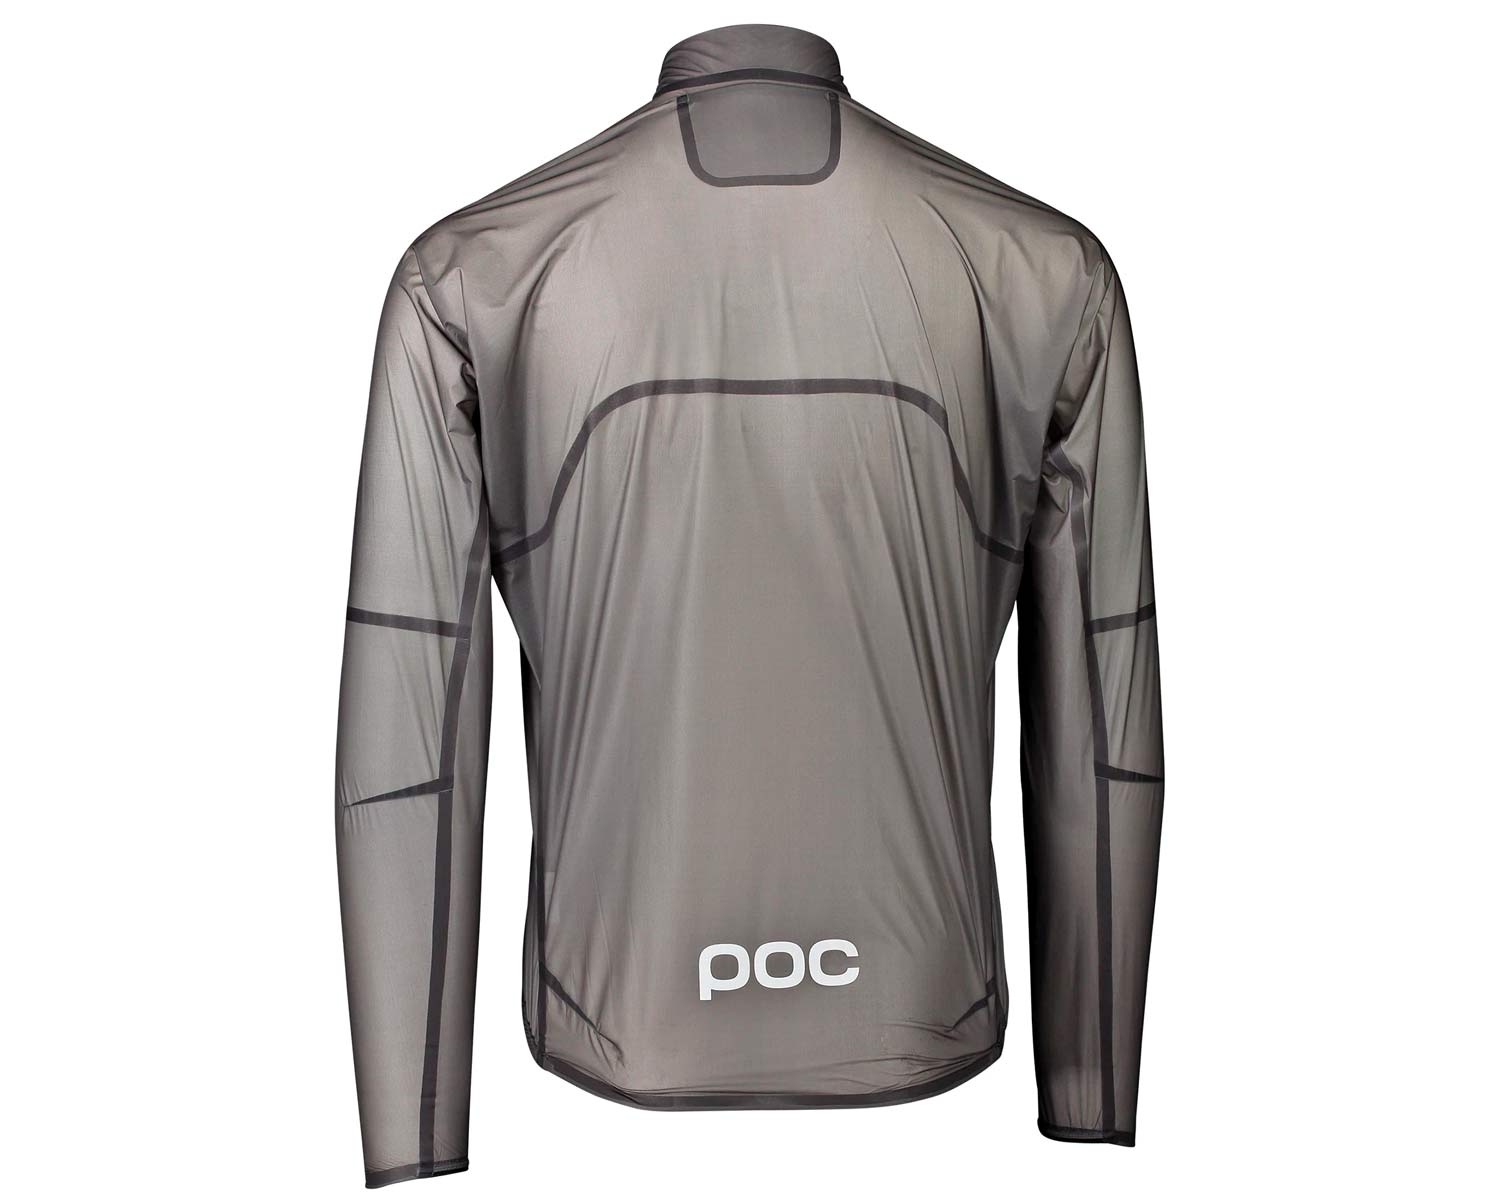 POC Supreme Rain Jacket ultralight 3-layer waterproof protection, rear